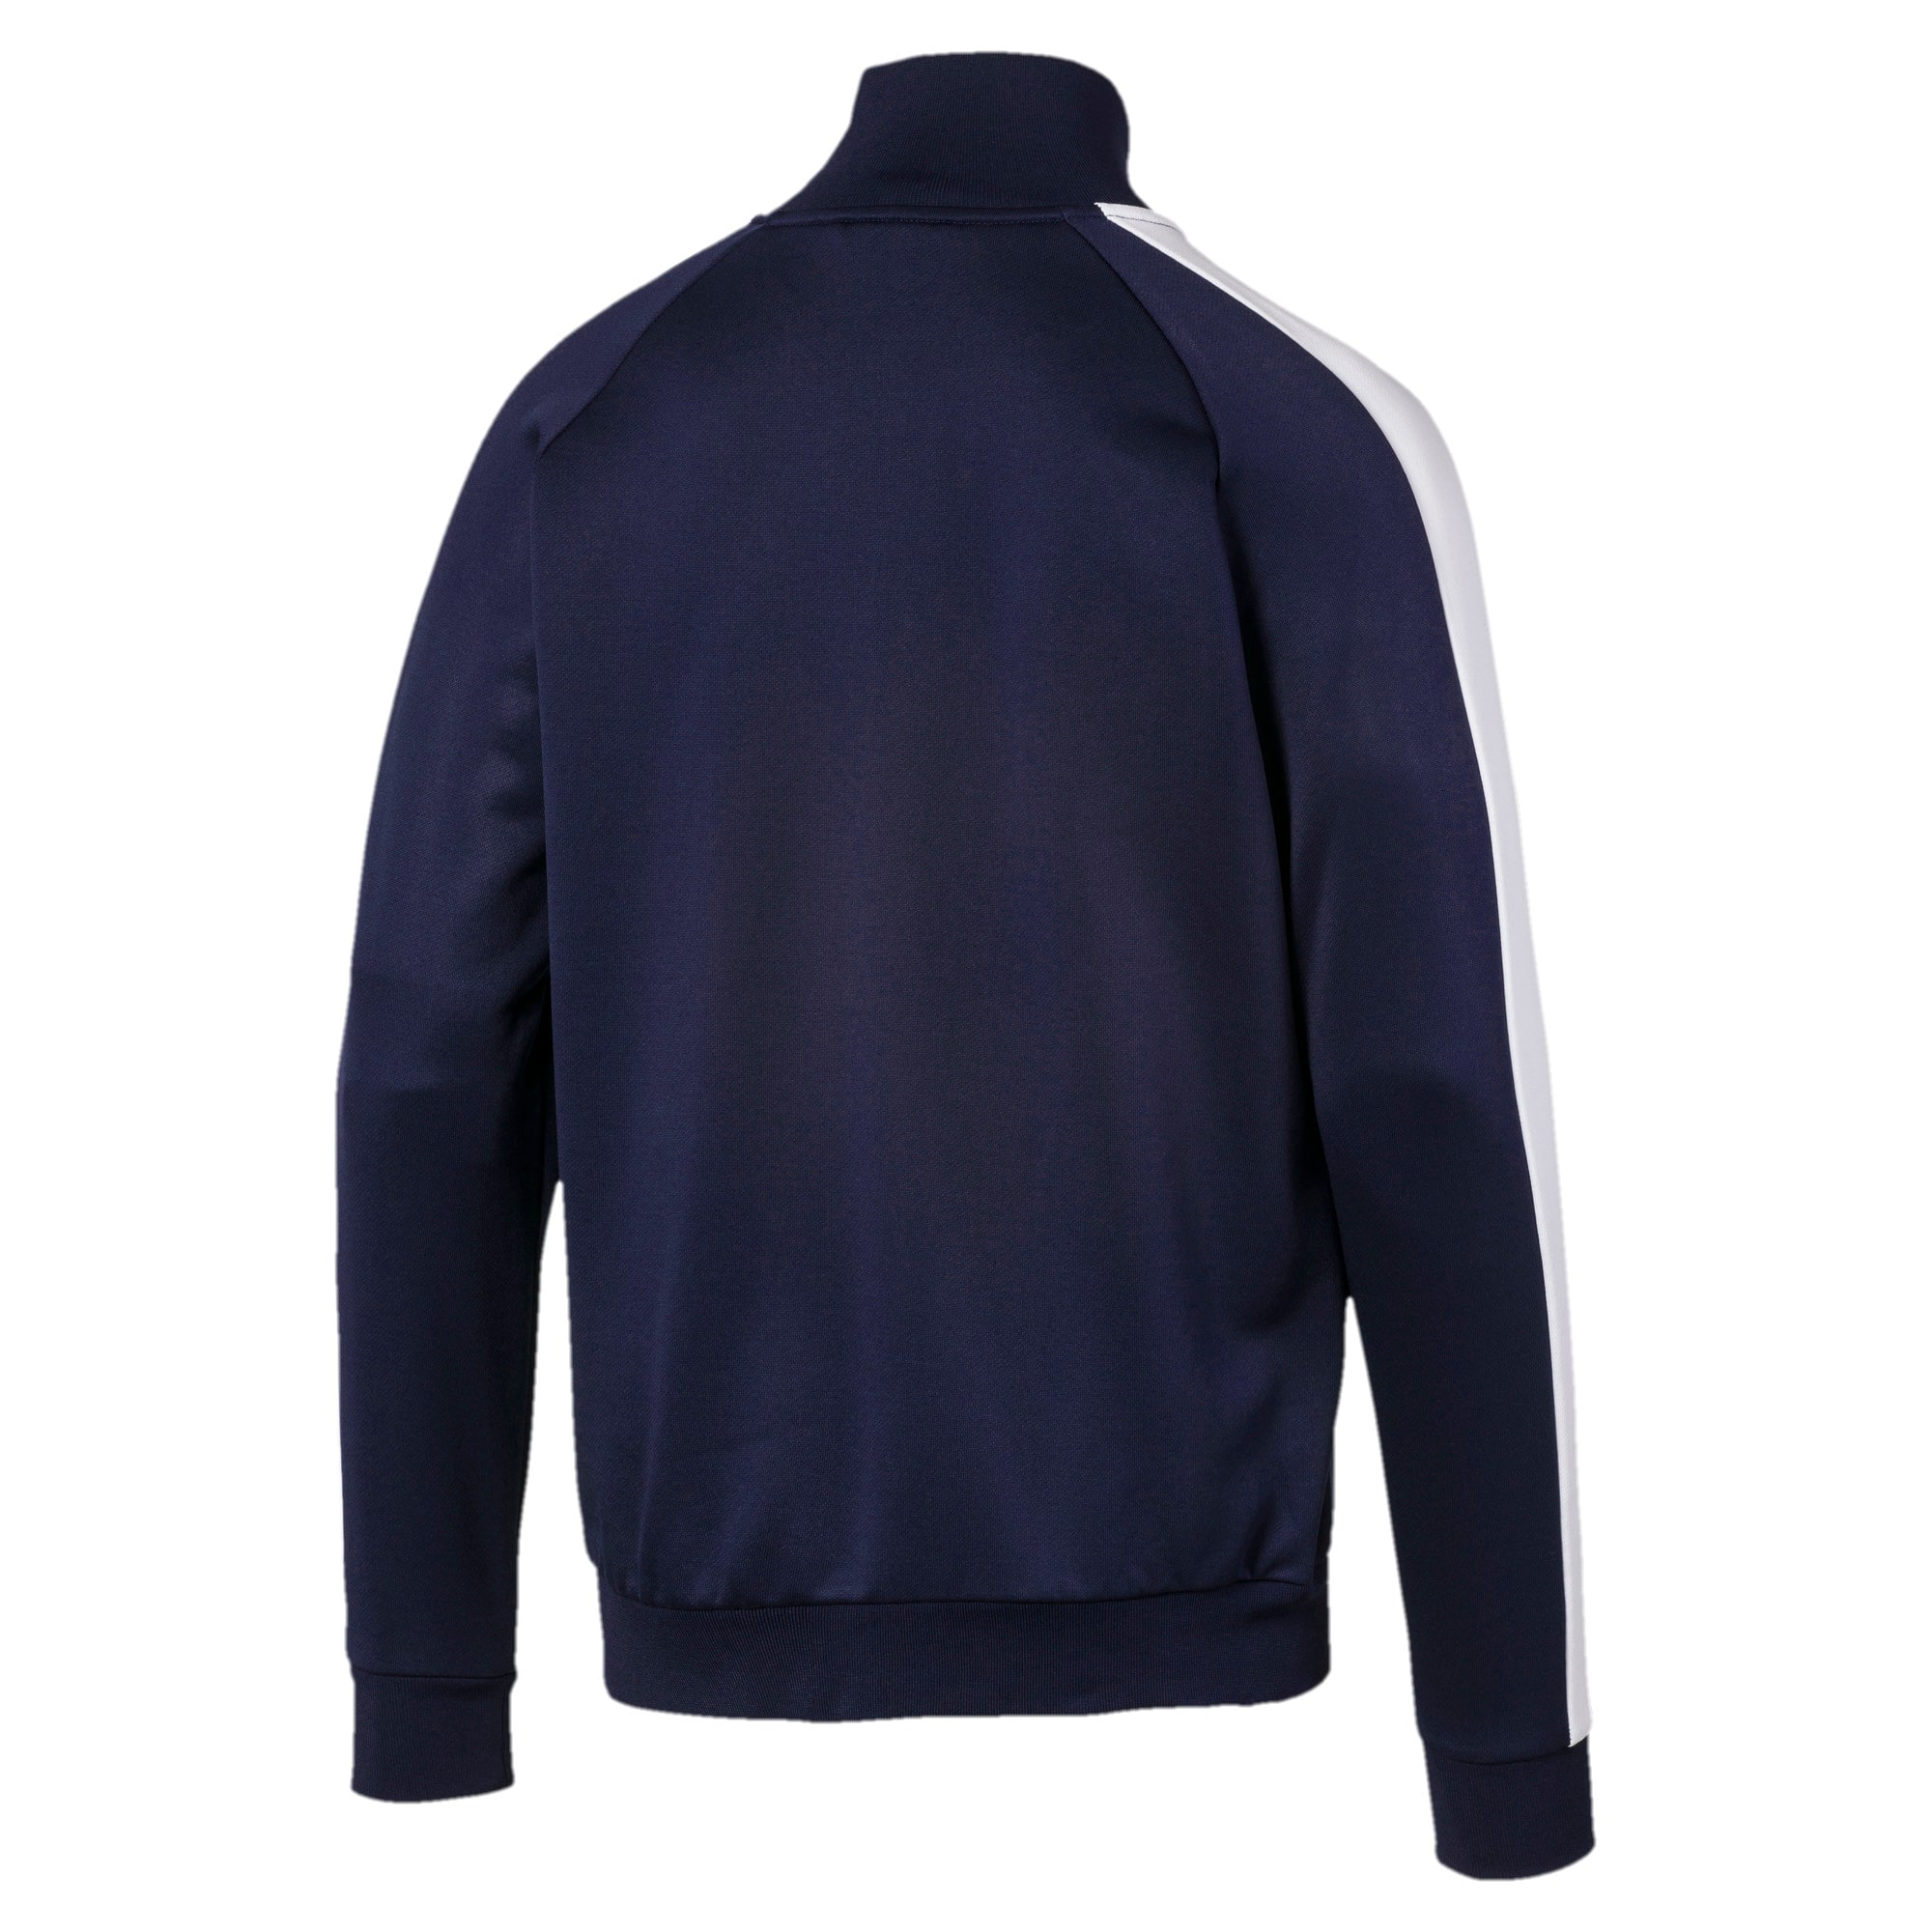 Thumbnail 5 of Iconic T7 Men's Track Jacket, Peacoat, medium